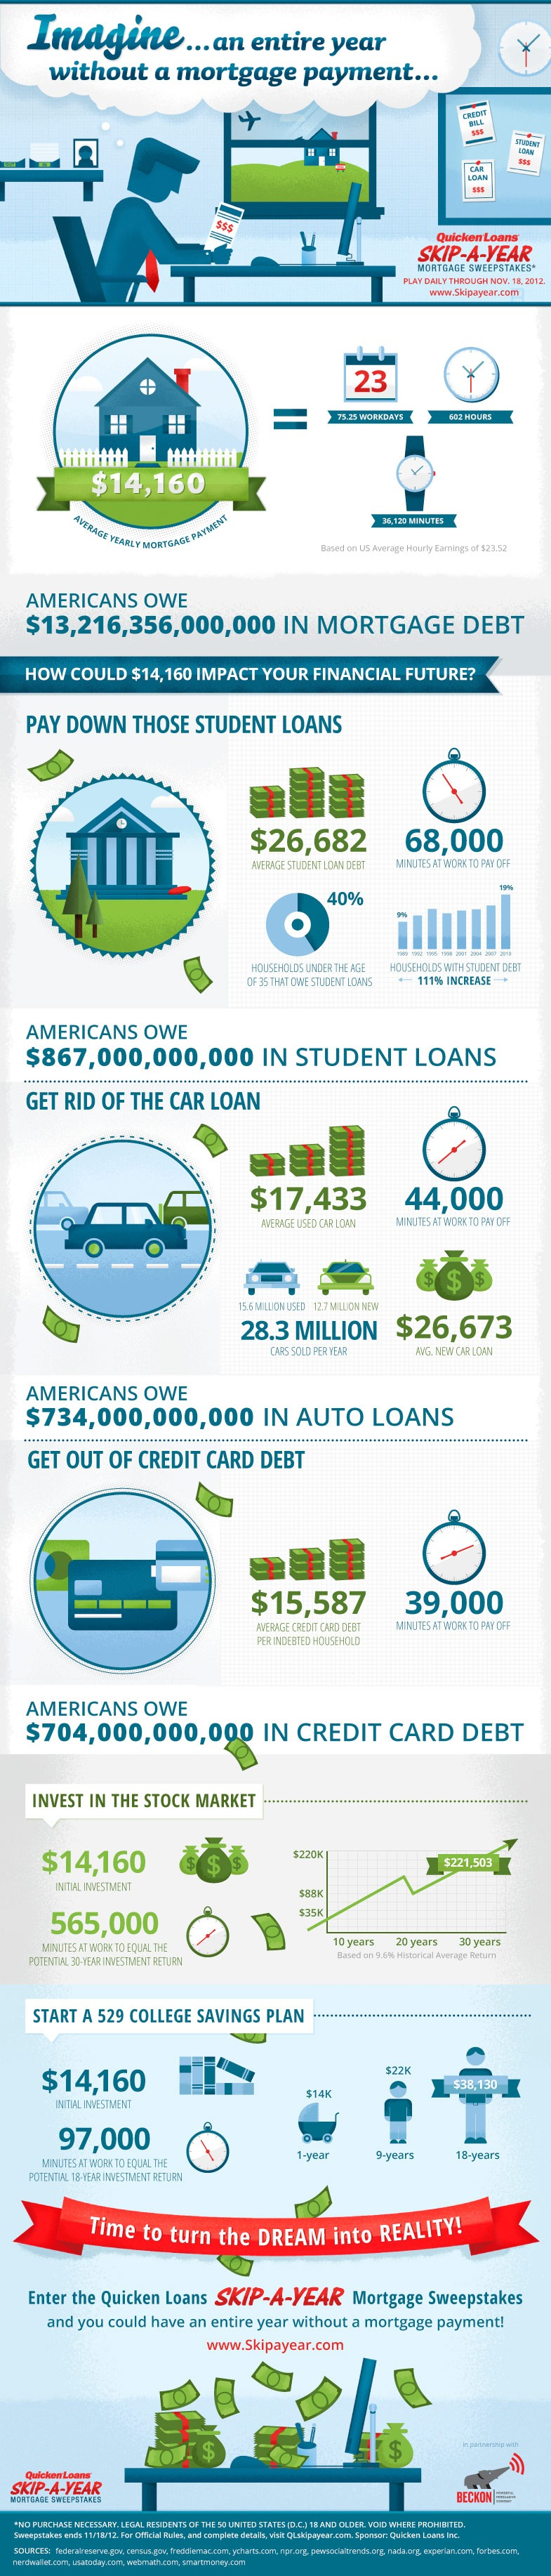 skip a year sweepstakes1 Skip A Year Sweepstakes Mortgage Payment and Debt Infographic